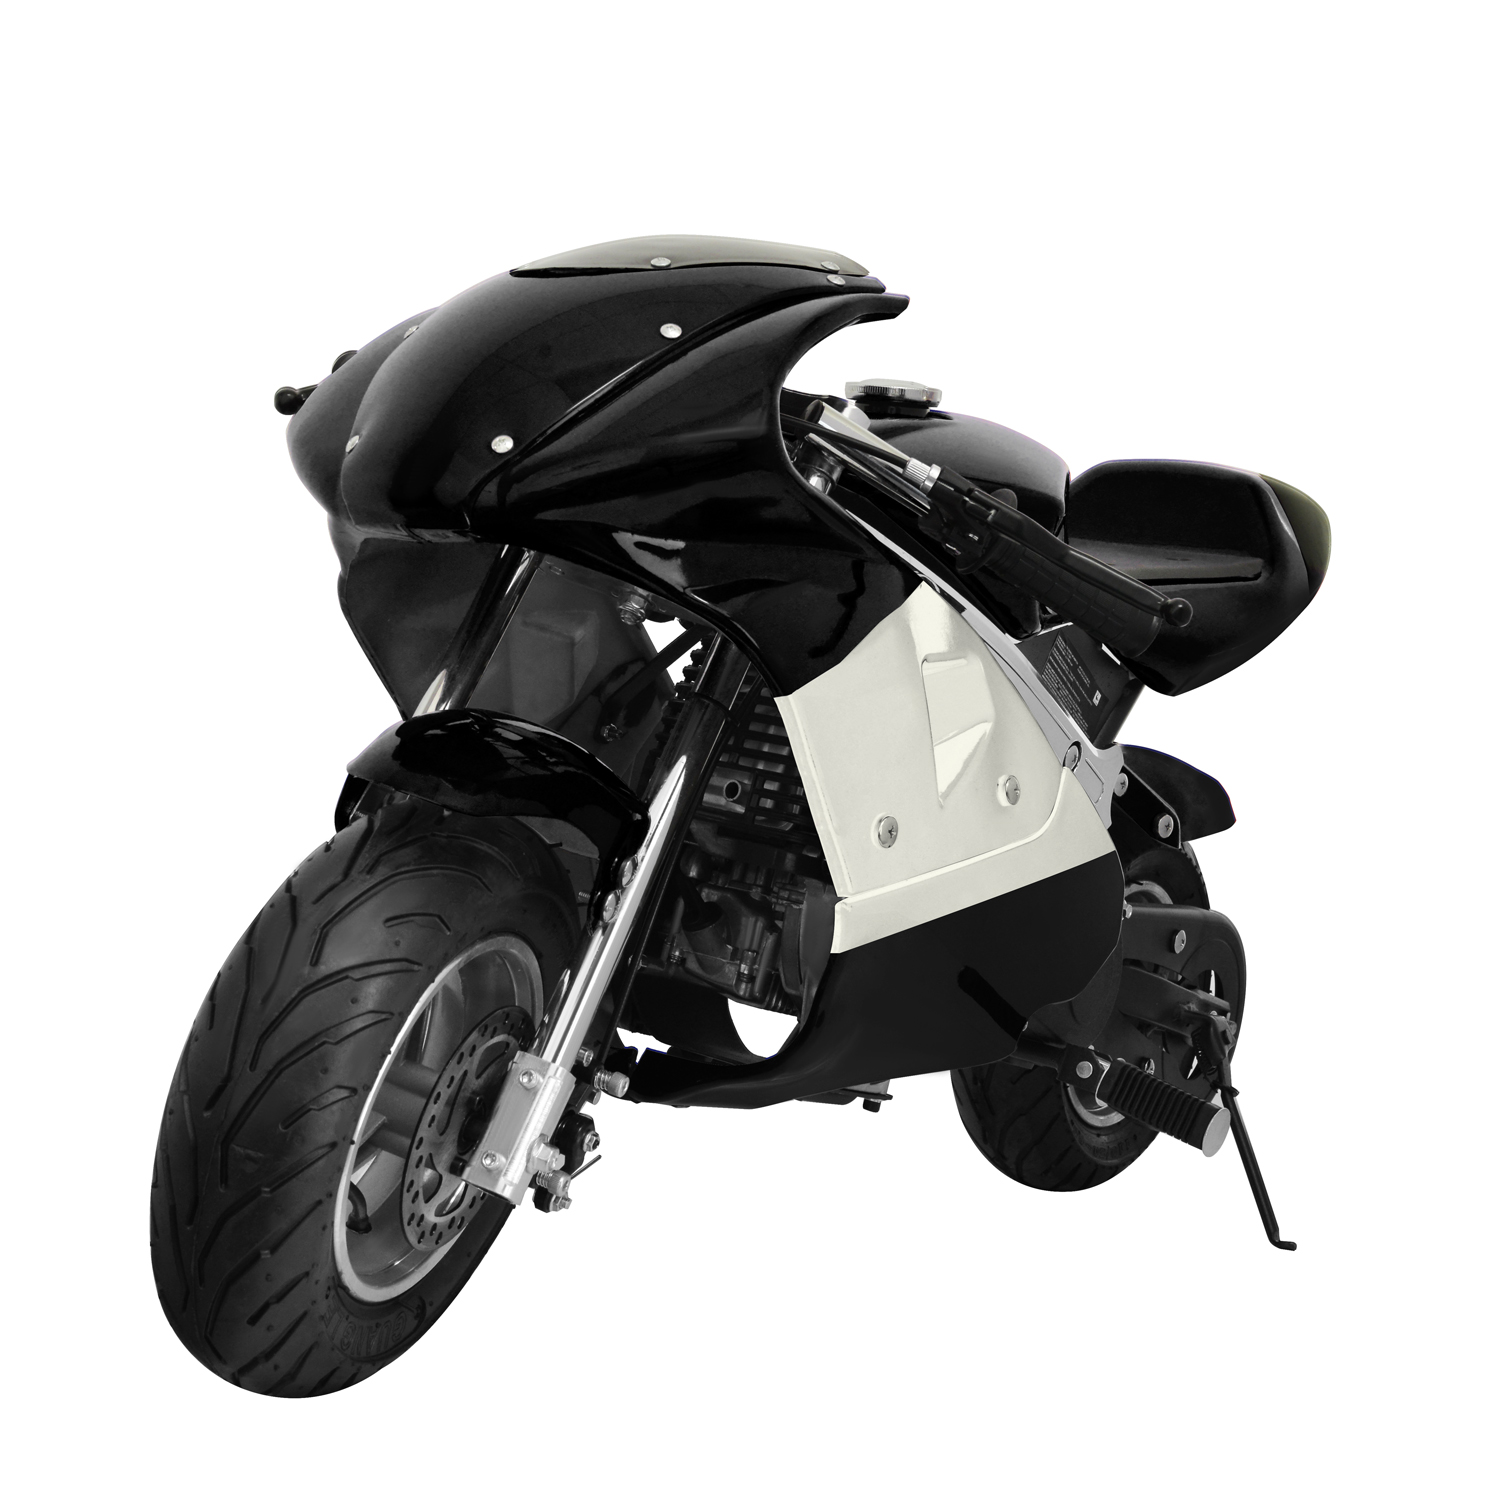 """KingSports Black 40cc Gas Mini Pocket Bike Off-Road Motorcycle 45""""x24"""" 4-Stroke Ride-on Toy... by Luyuan, Inc."""